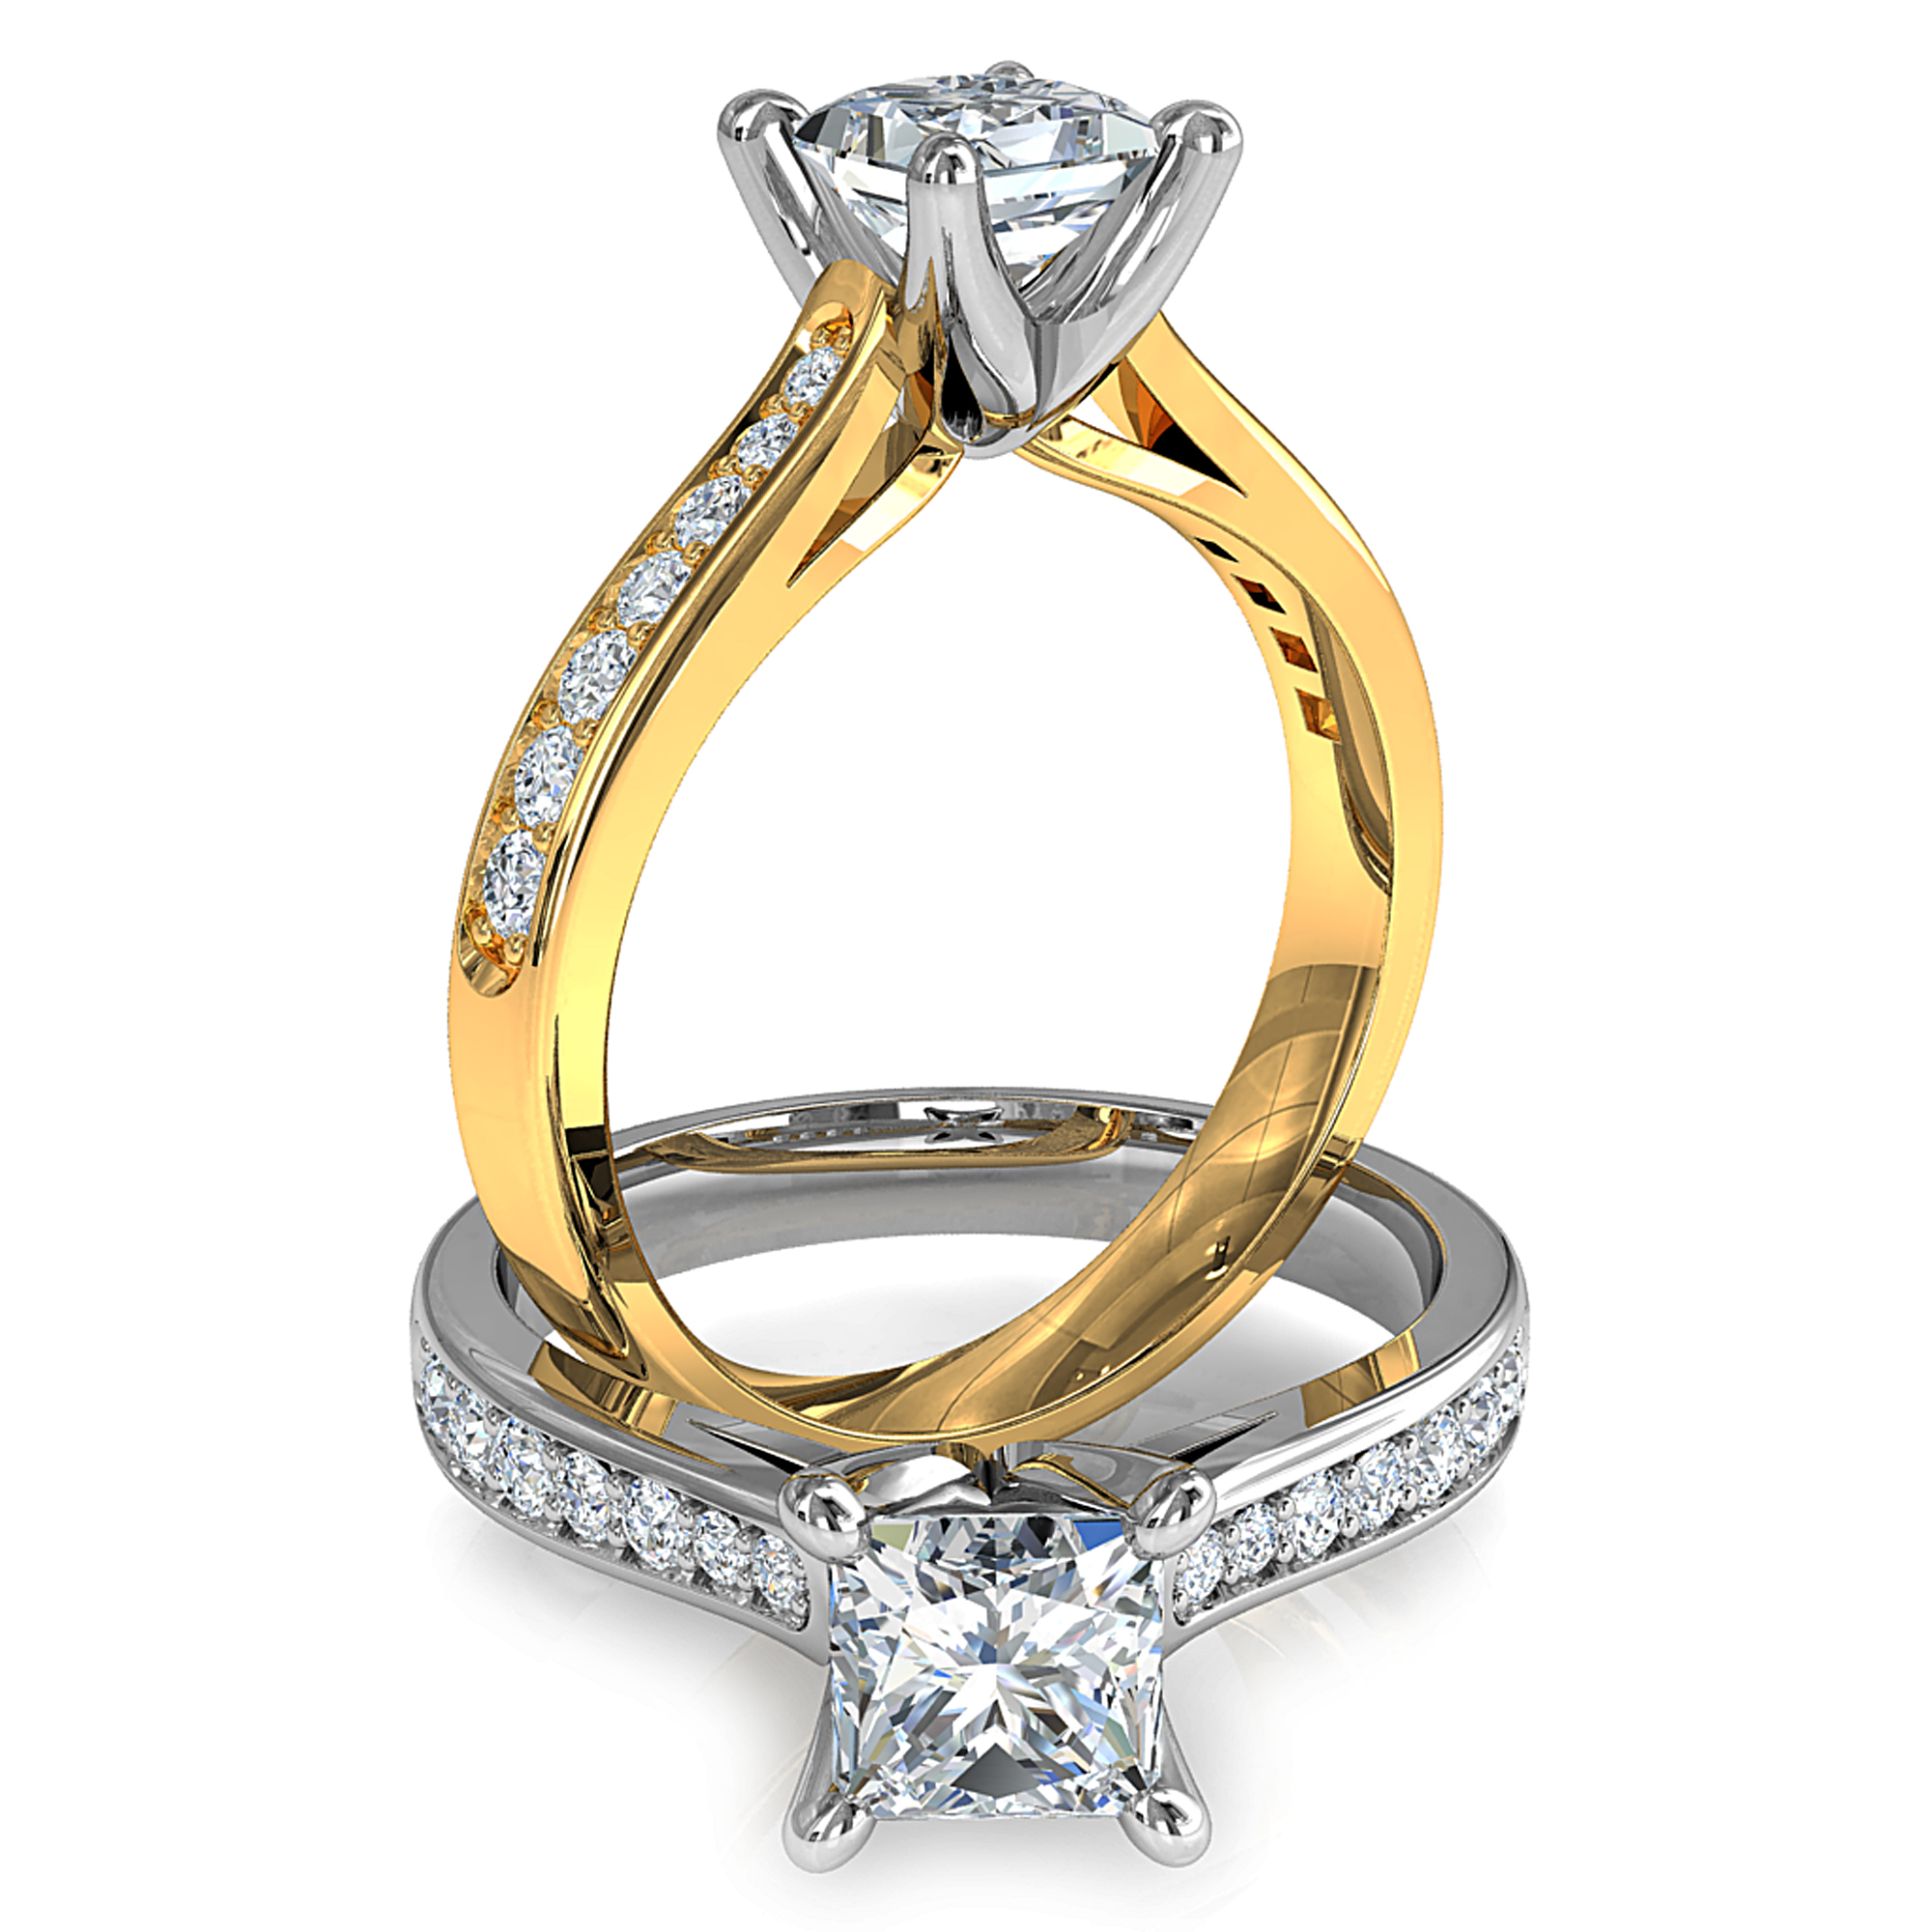 Princess Cut Solitaire Diamond Engagement Ring, 4 Pear Claws on a Tapered Bead Set Band.